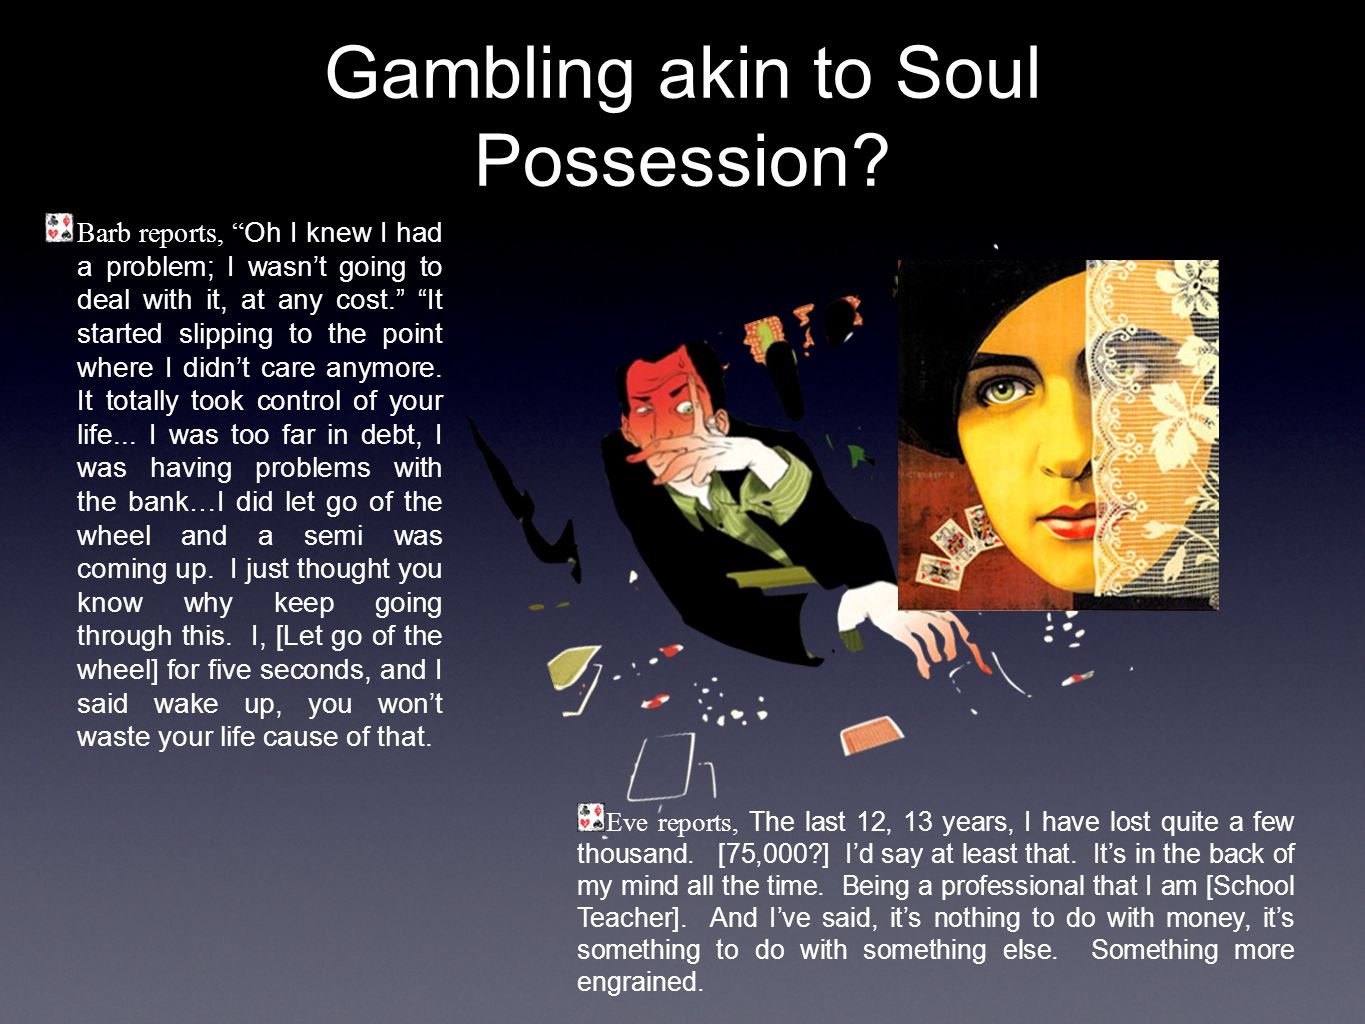 Gambling akin to Soul Possession.